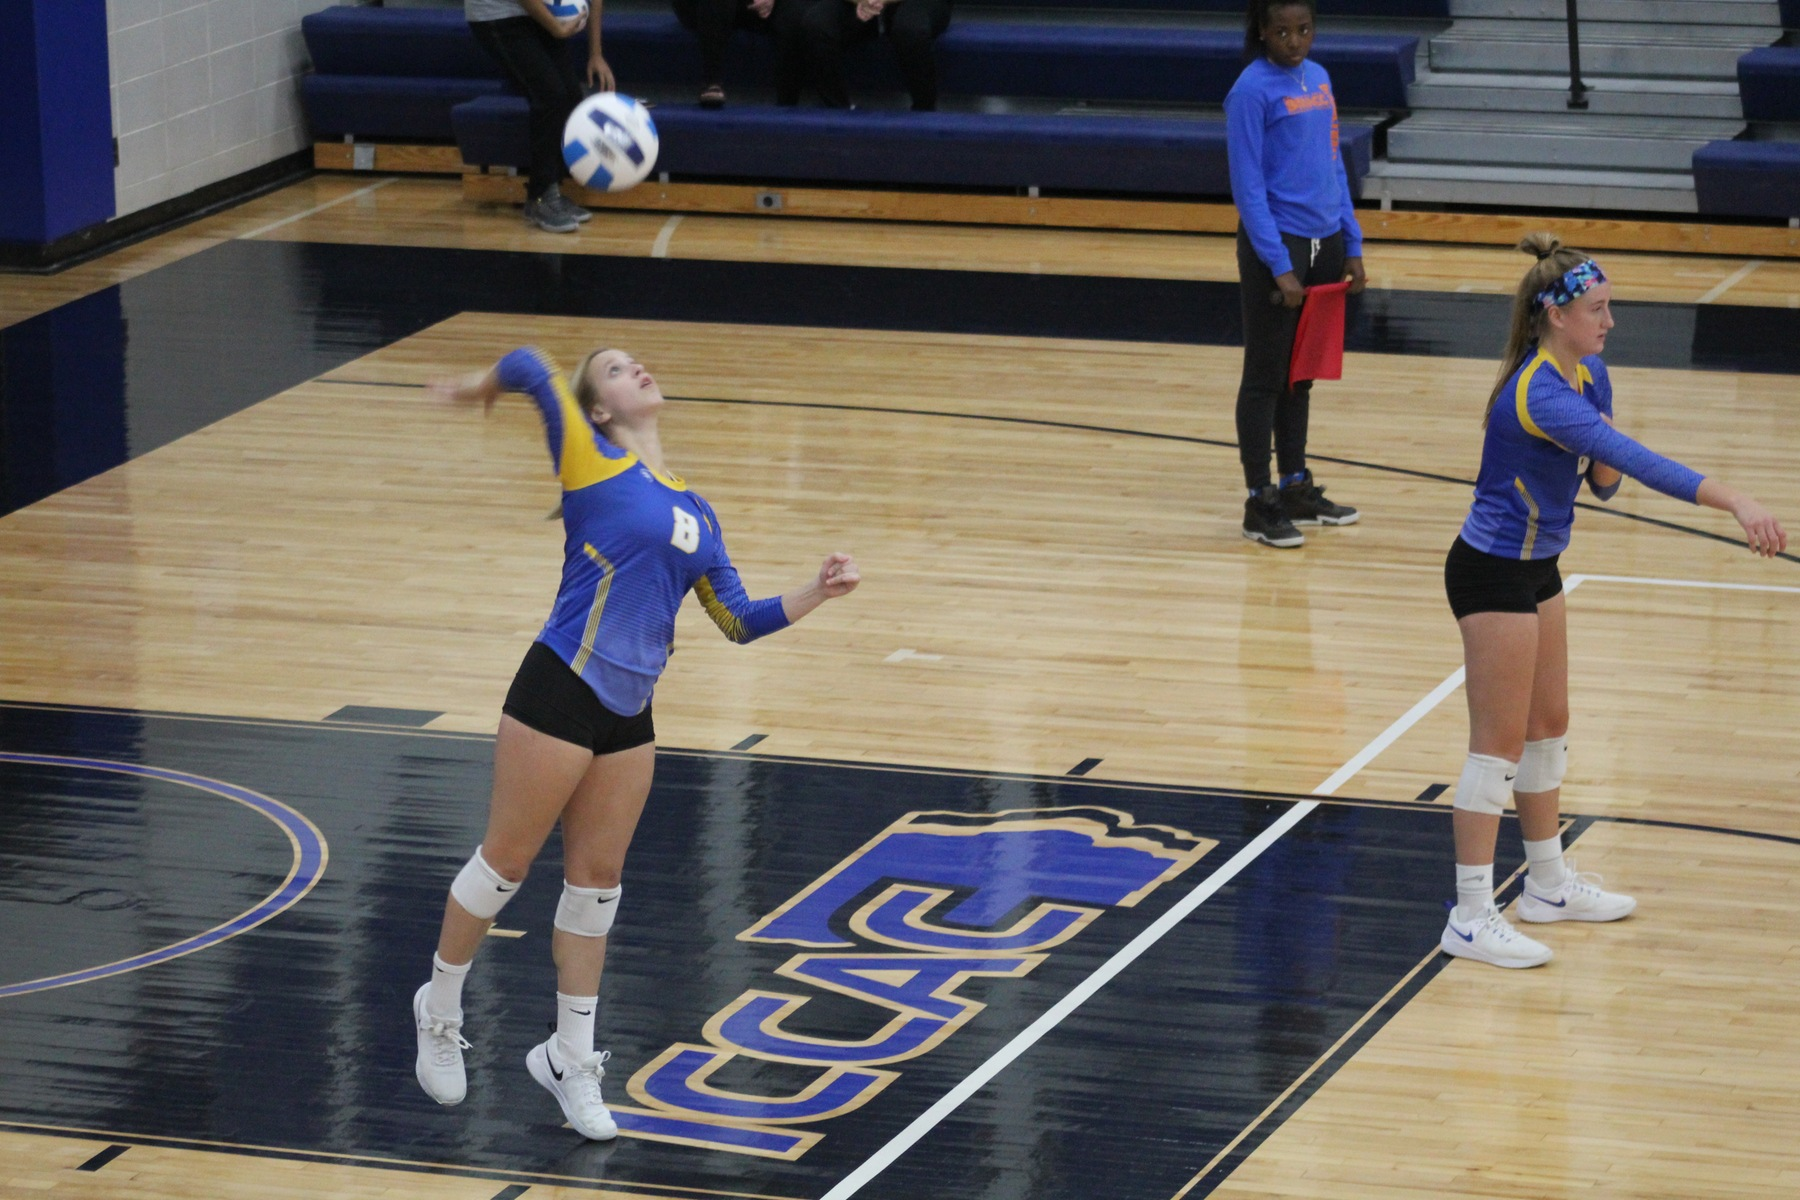 NIACC's Ashley Groe serves during Wednesday's match against DMACC in Boone.